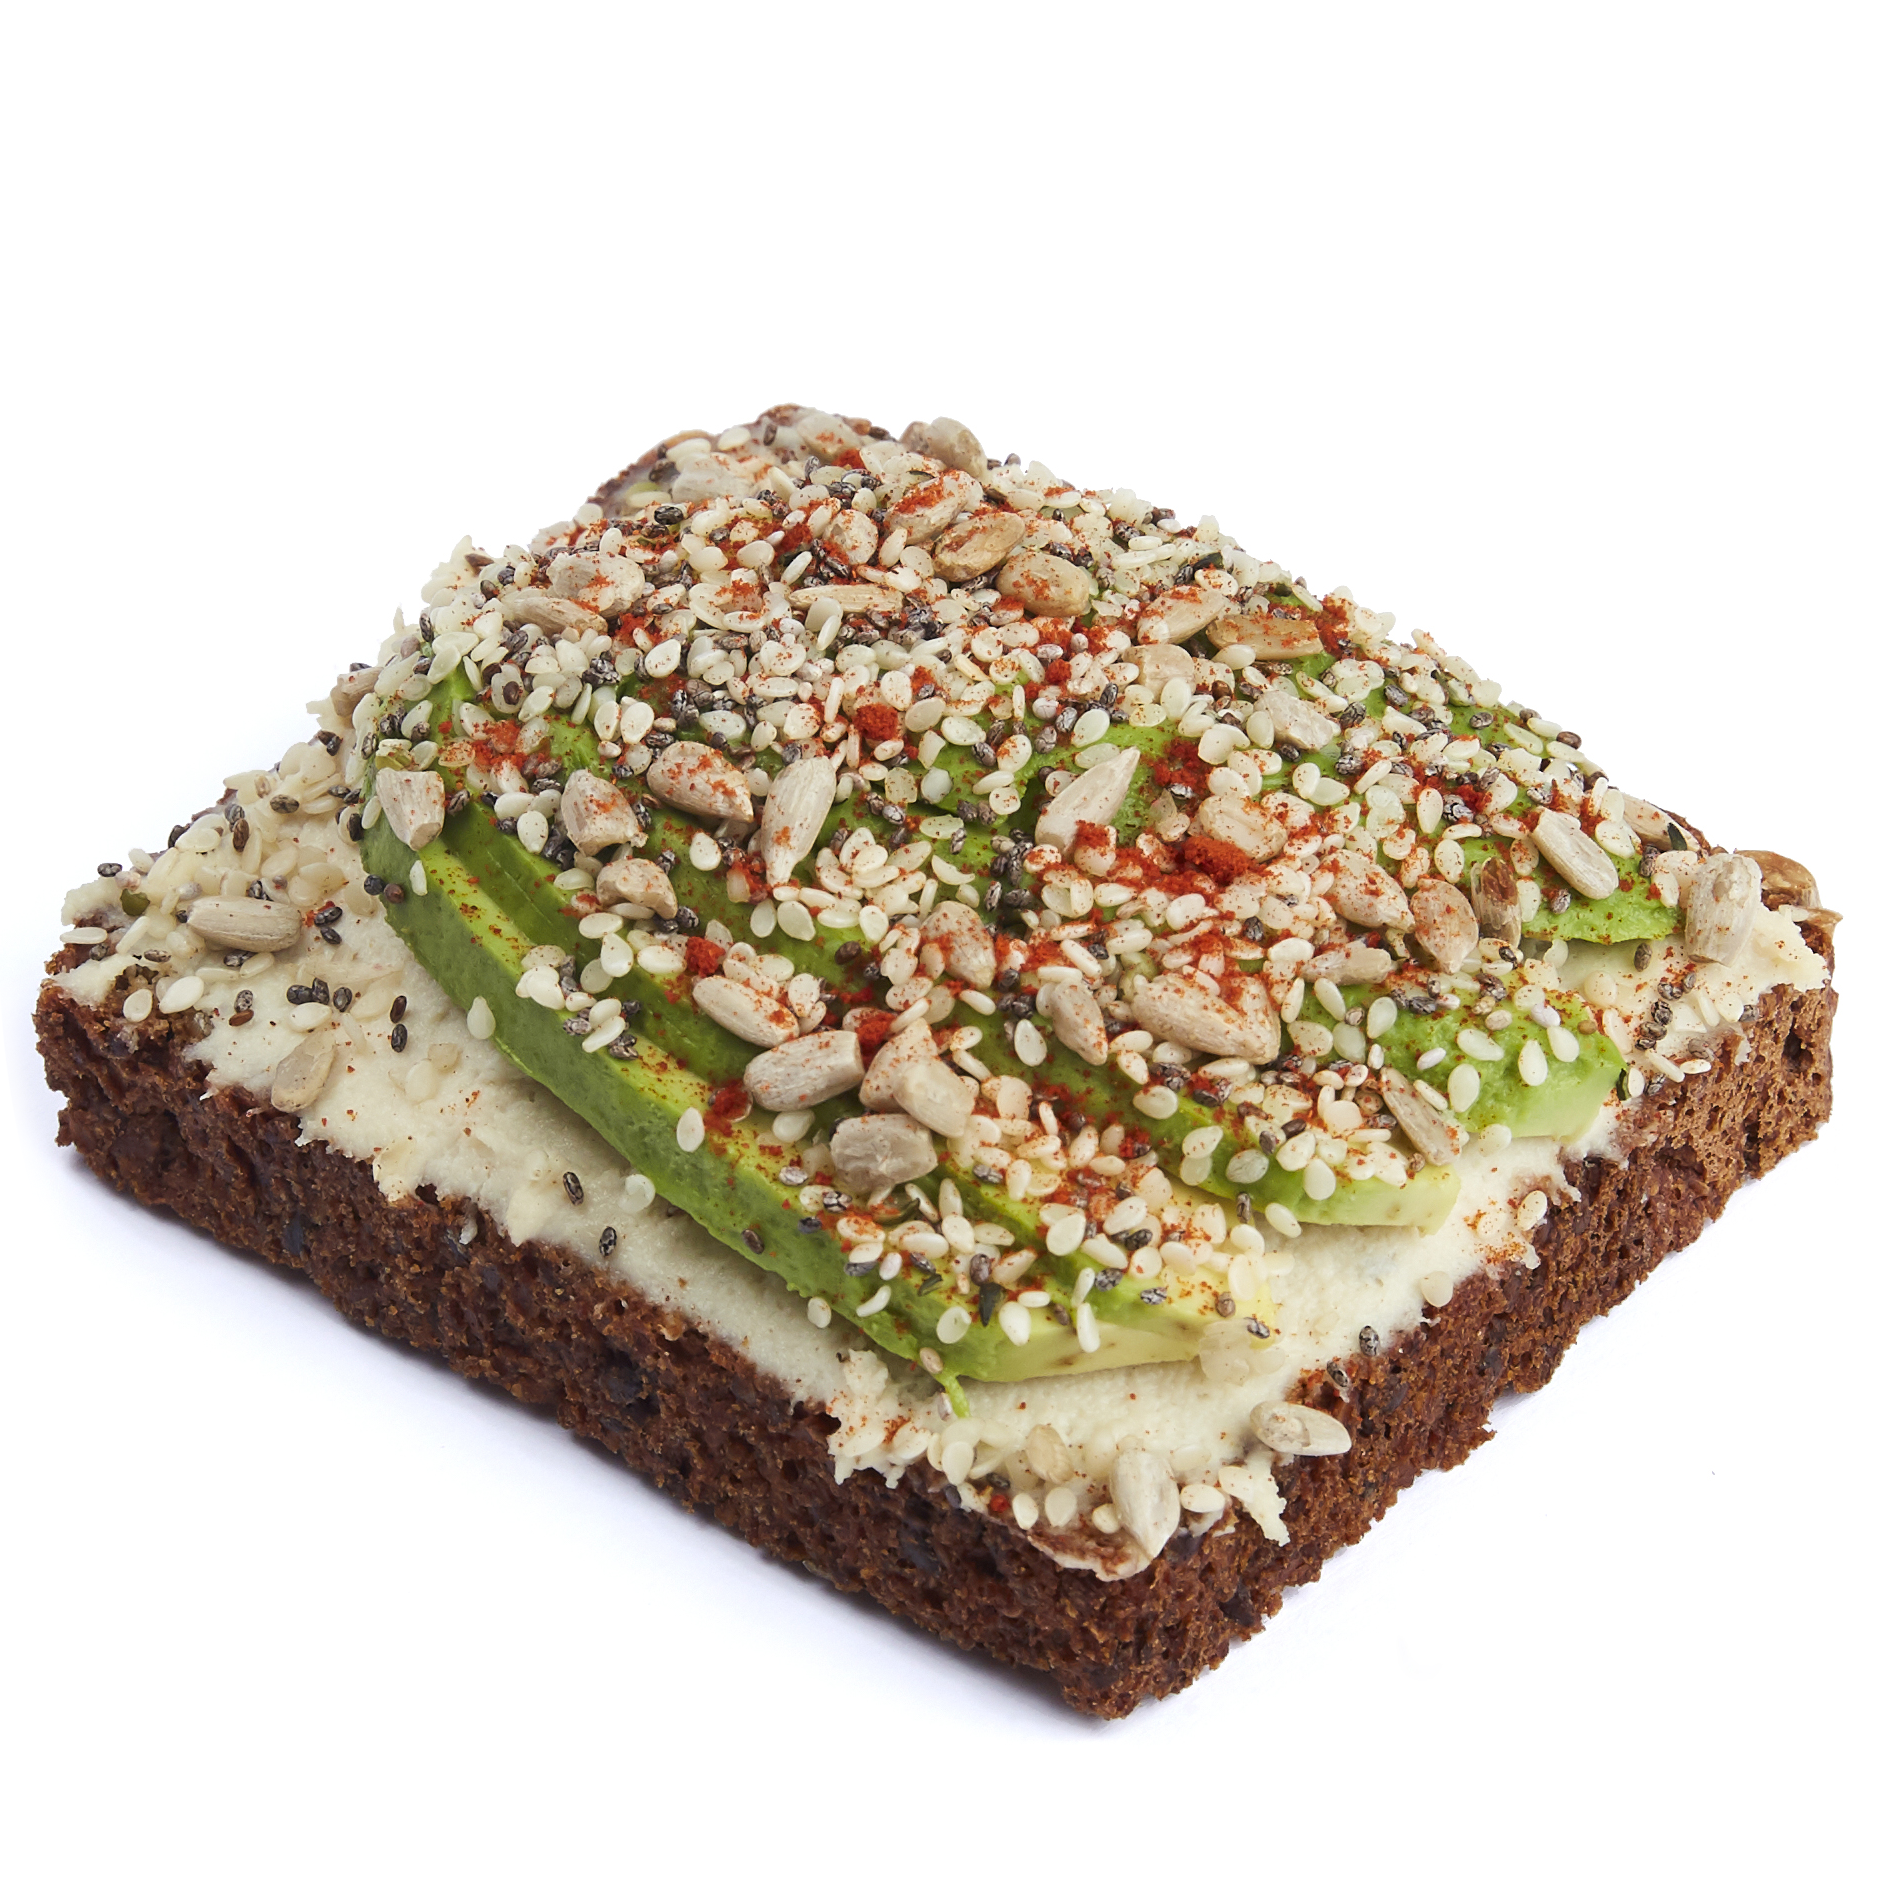 Cashew cheese with seeded avocado and paprika  - $10.99